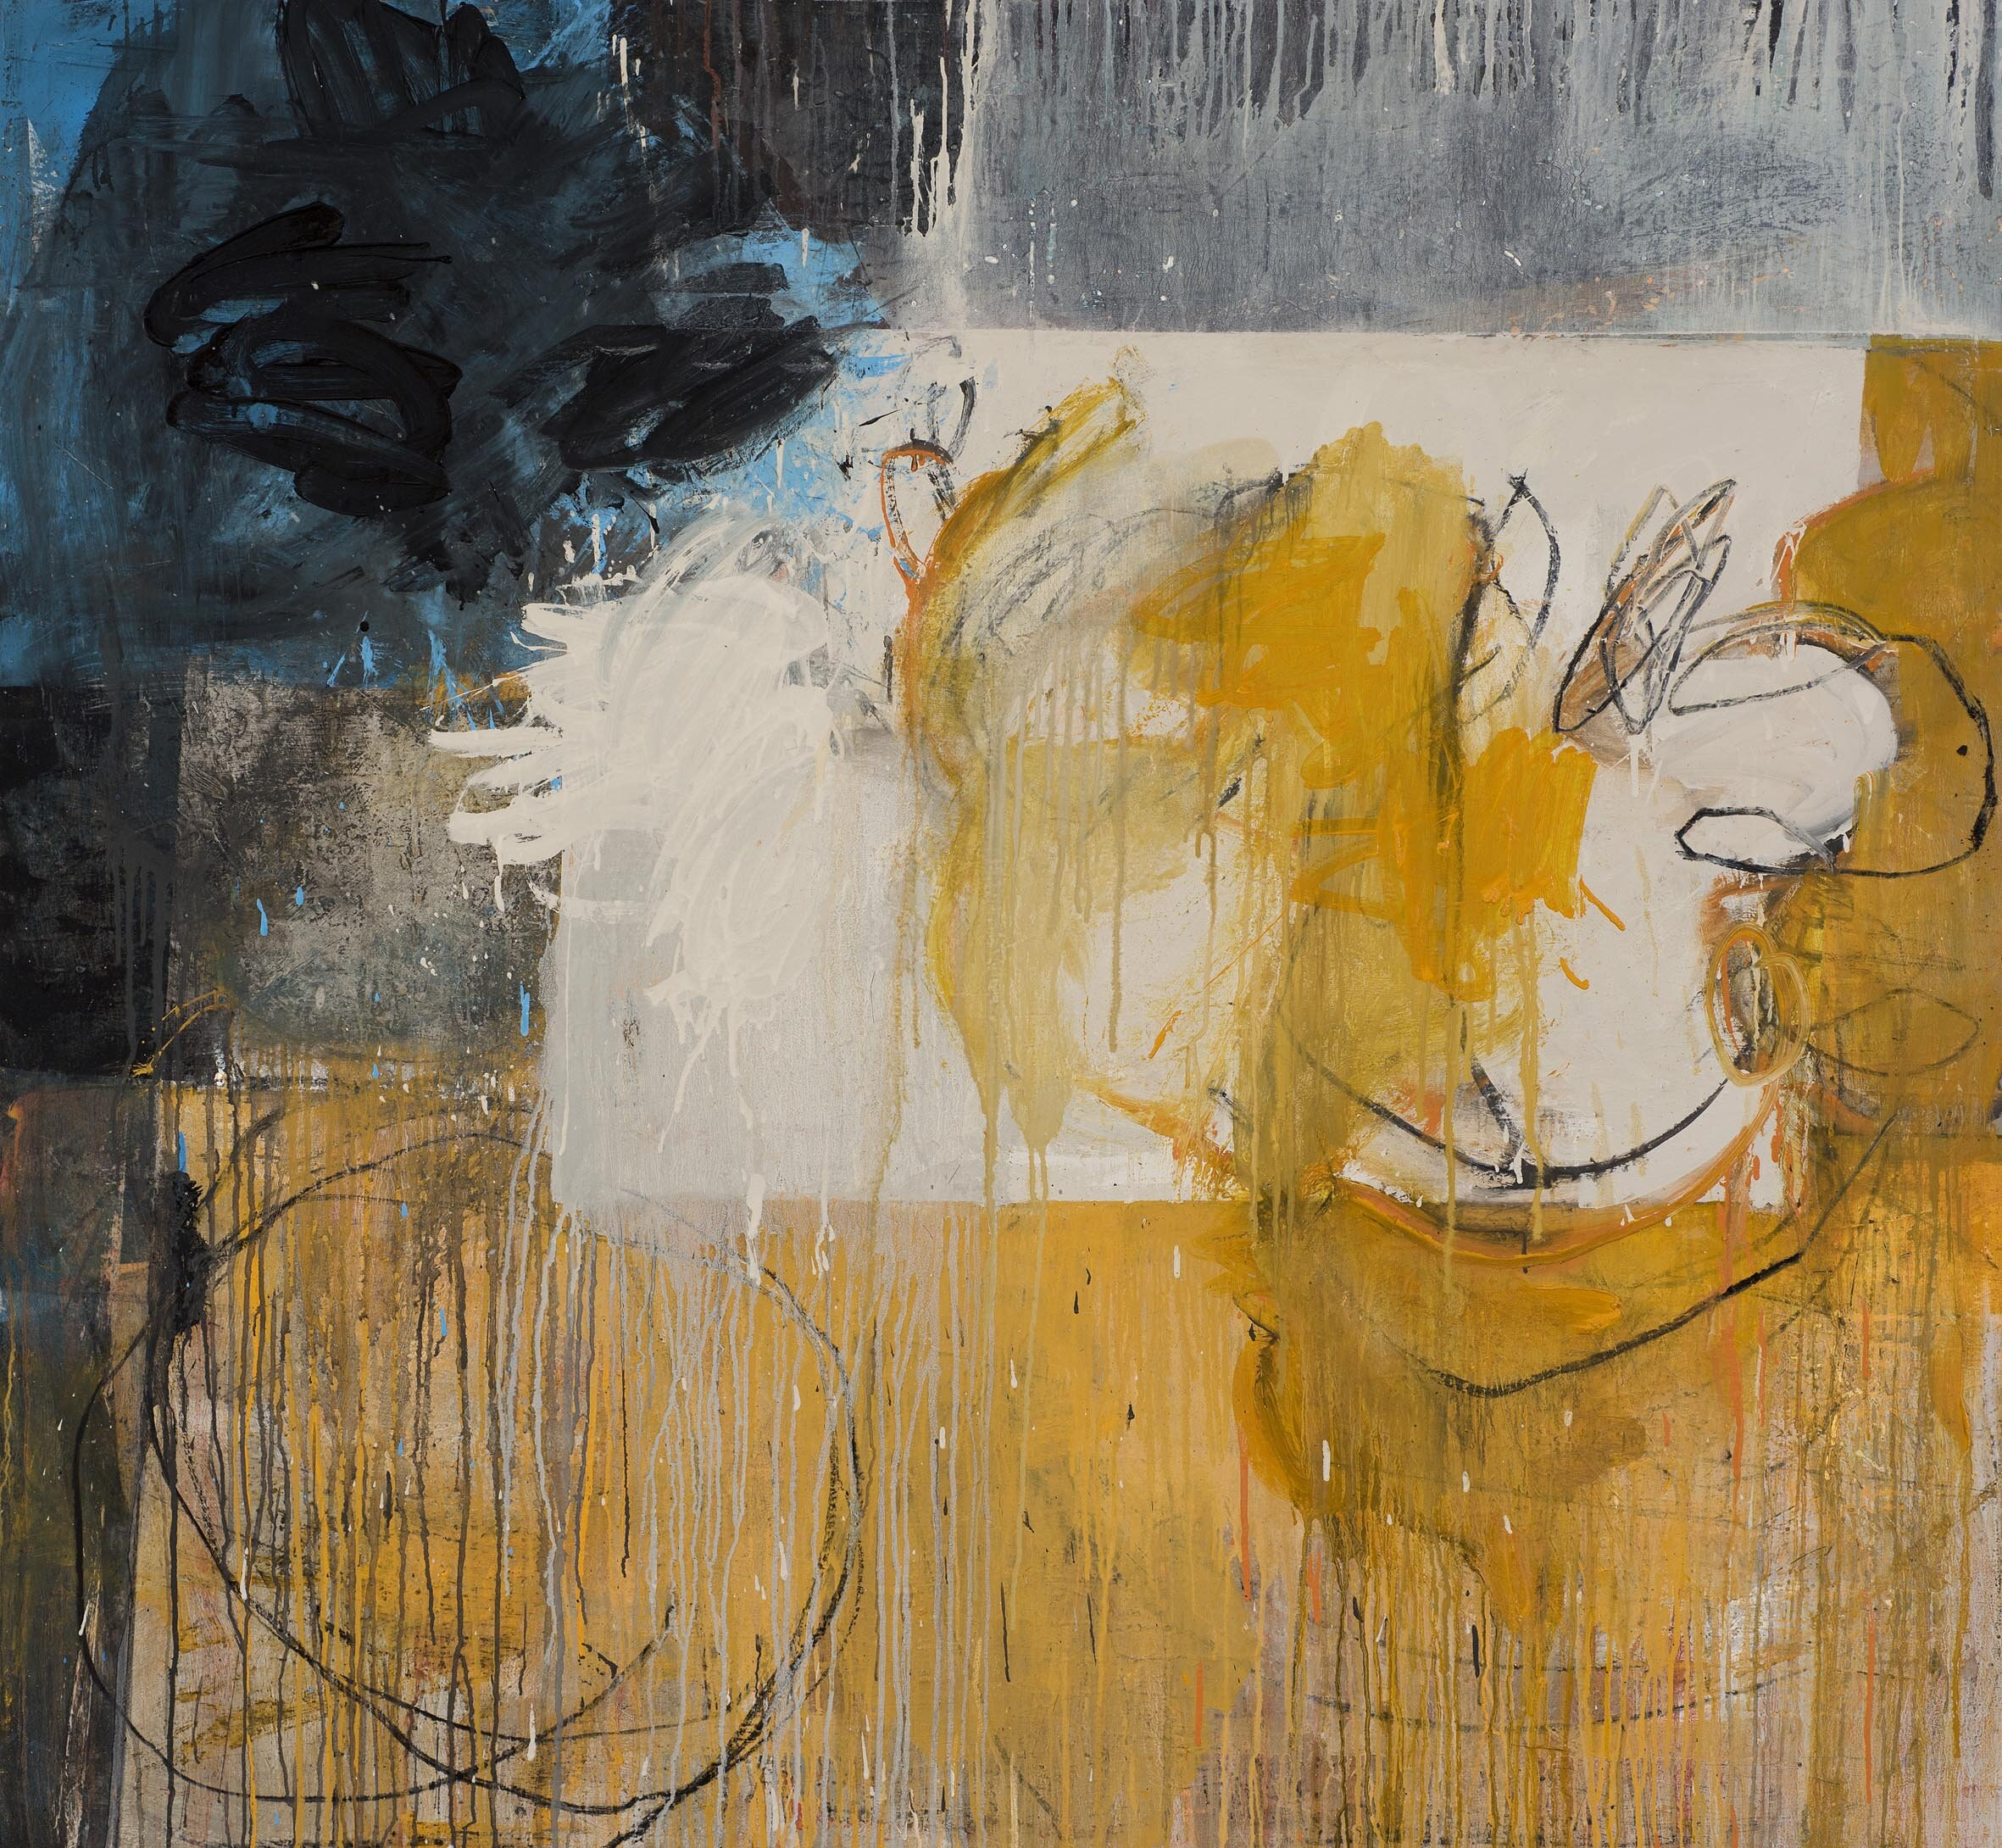 Day Bowman_Plashy Place 3_oil, charcoal and conte on canvas_138 x  150 x 3 cm_2018_DSC_2573.jpg